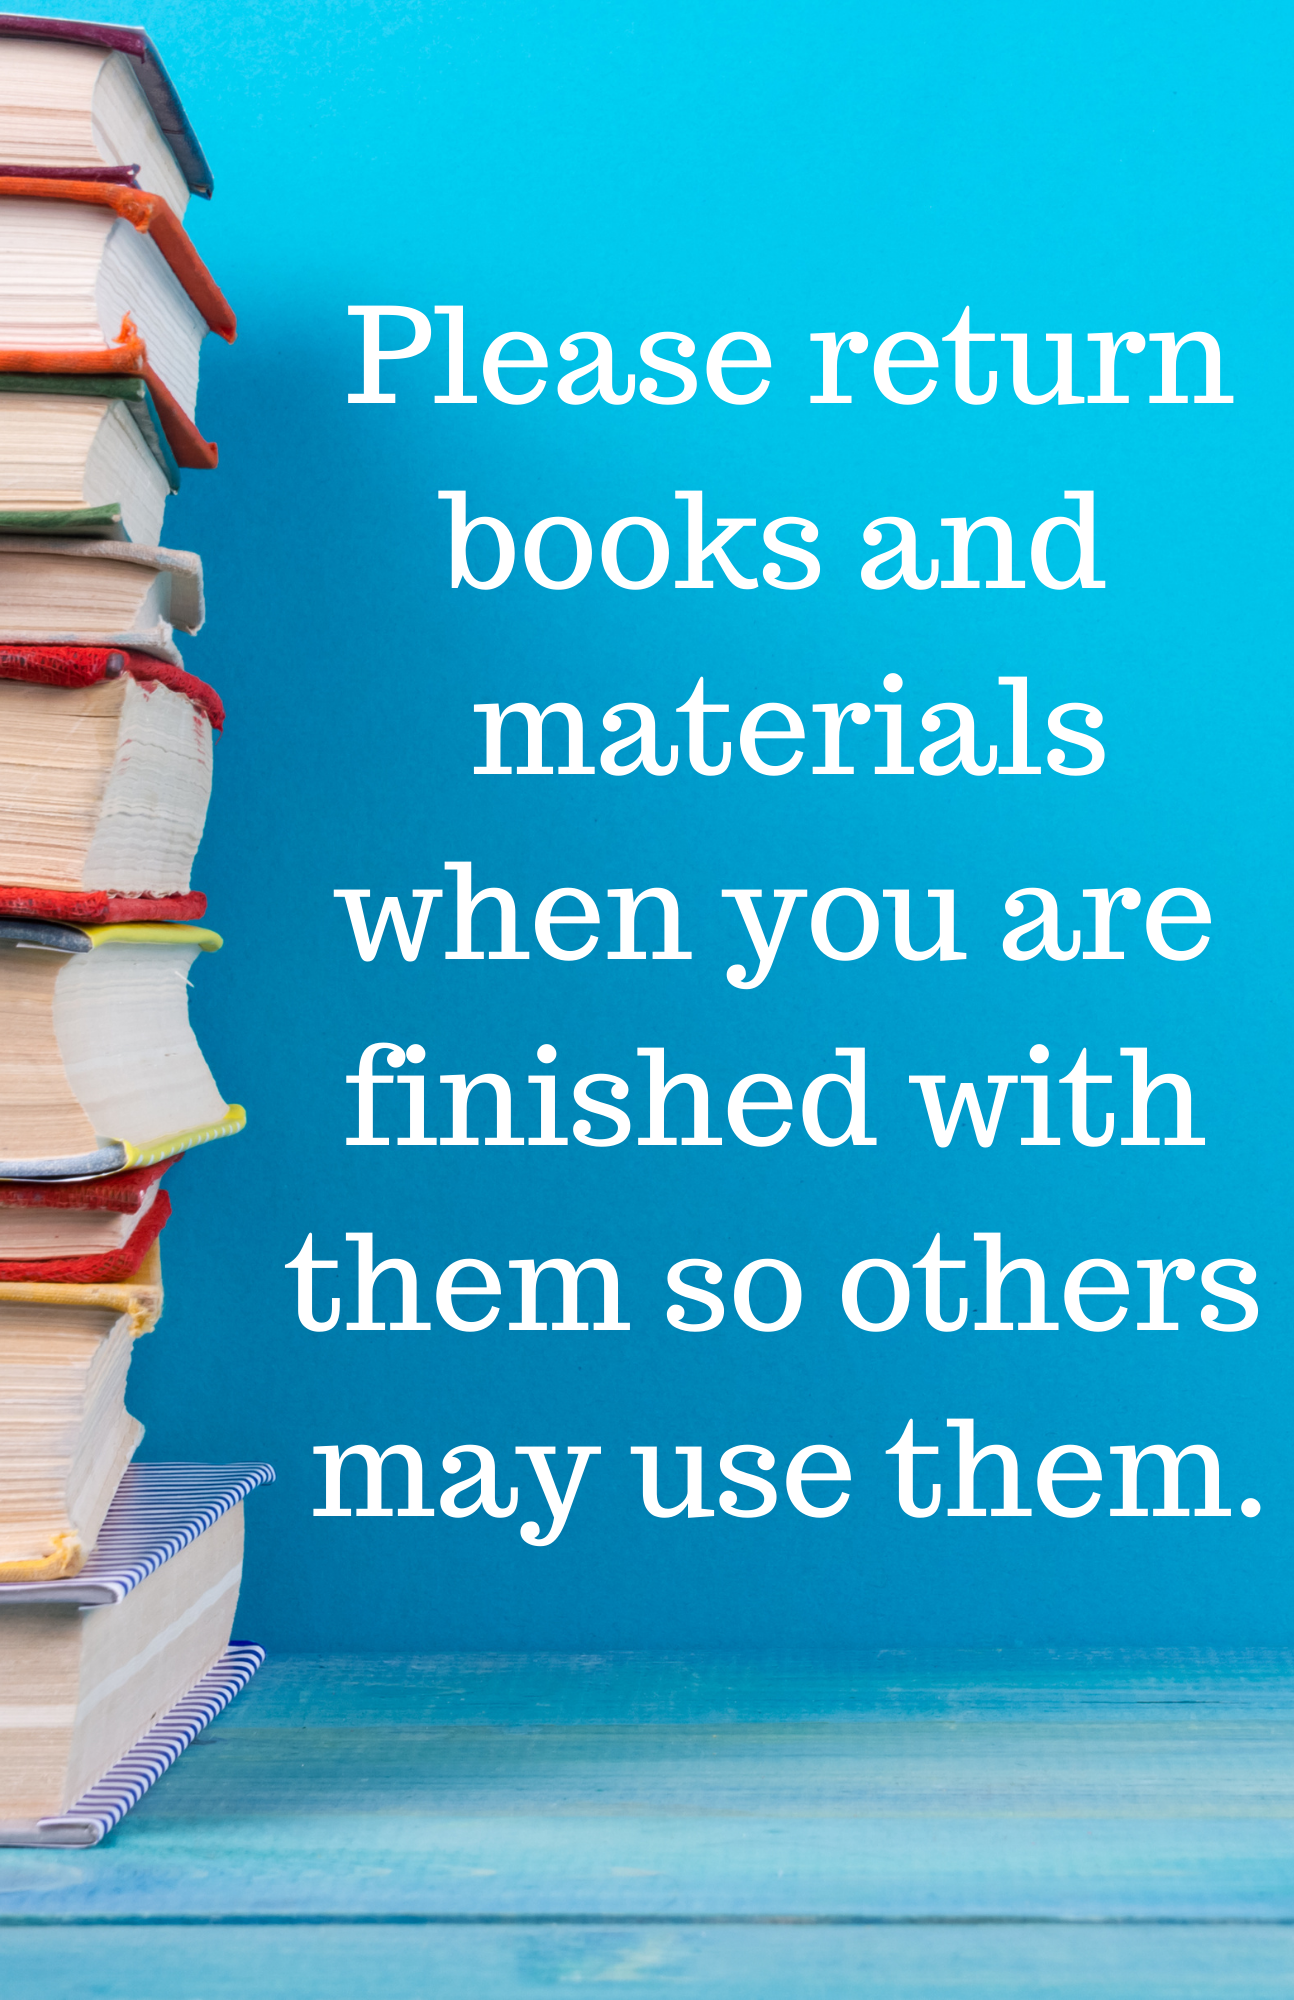 stack of books on blue background with text saying